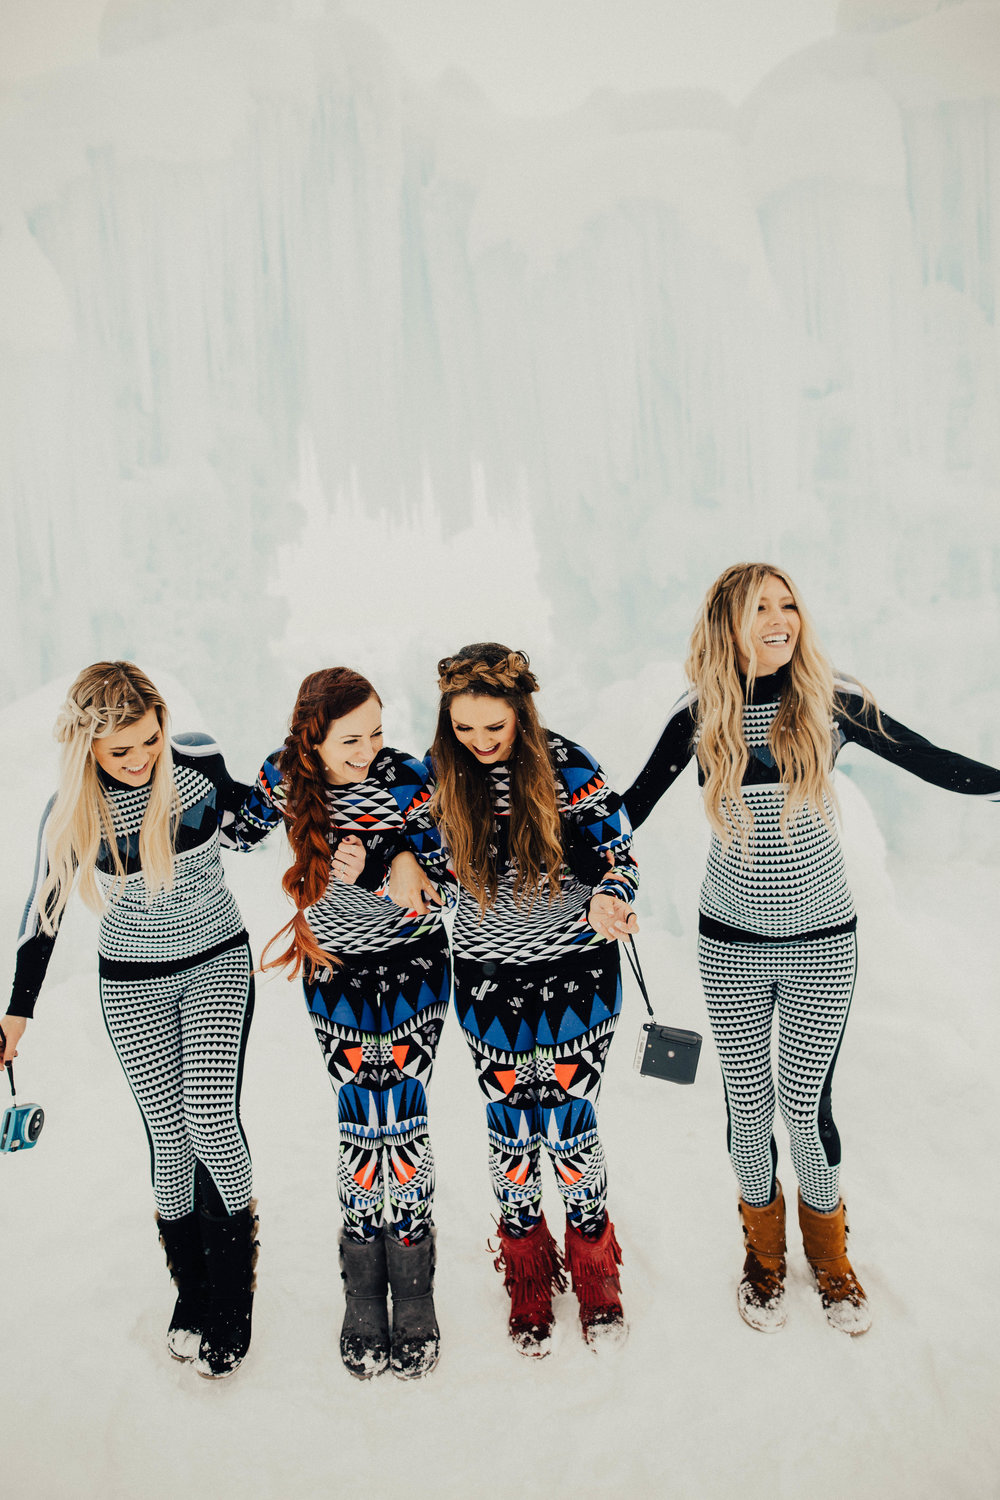 Instax Ice Queens, rocking their Sweaty Betty ski suits and Koolaburra snow boots at the ice Castles.